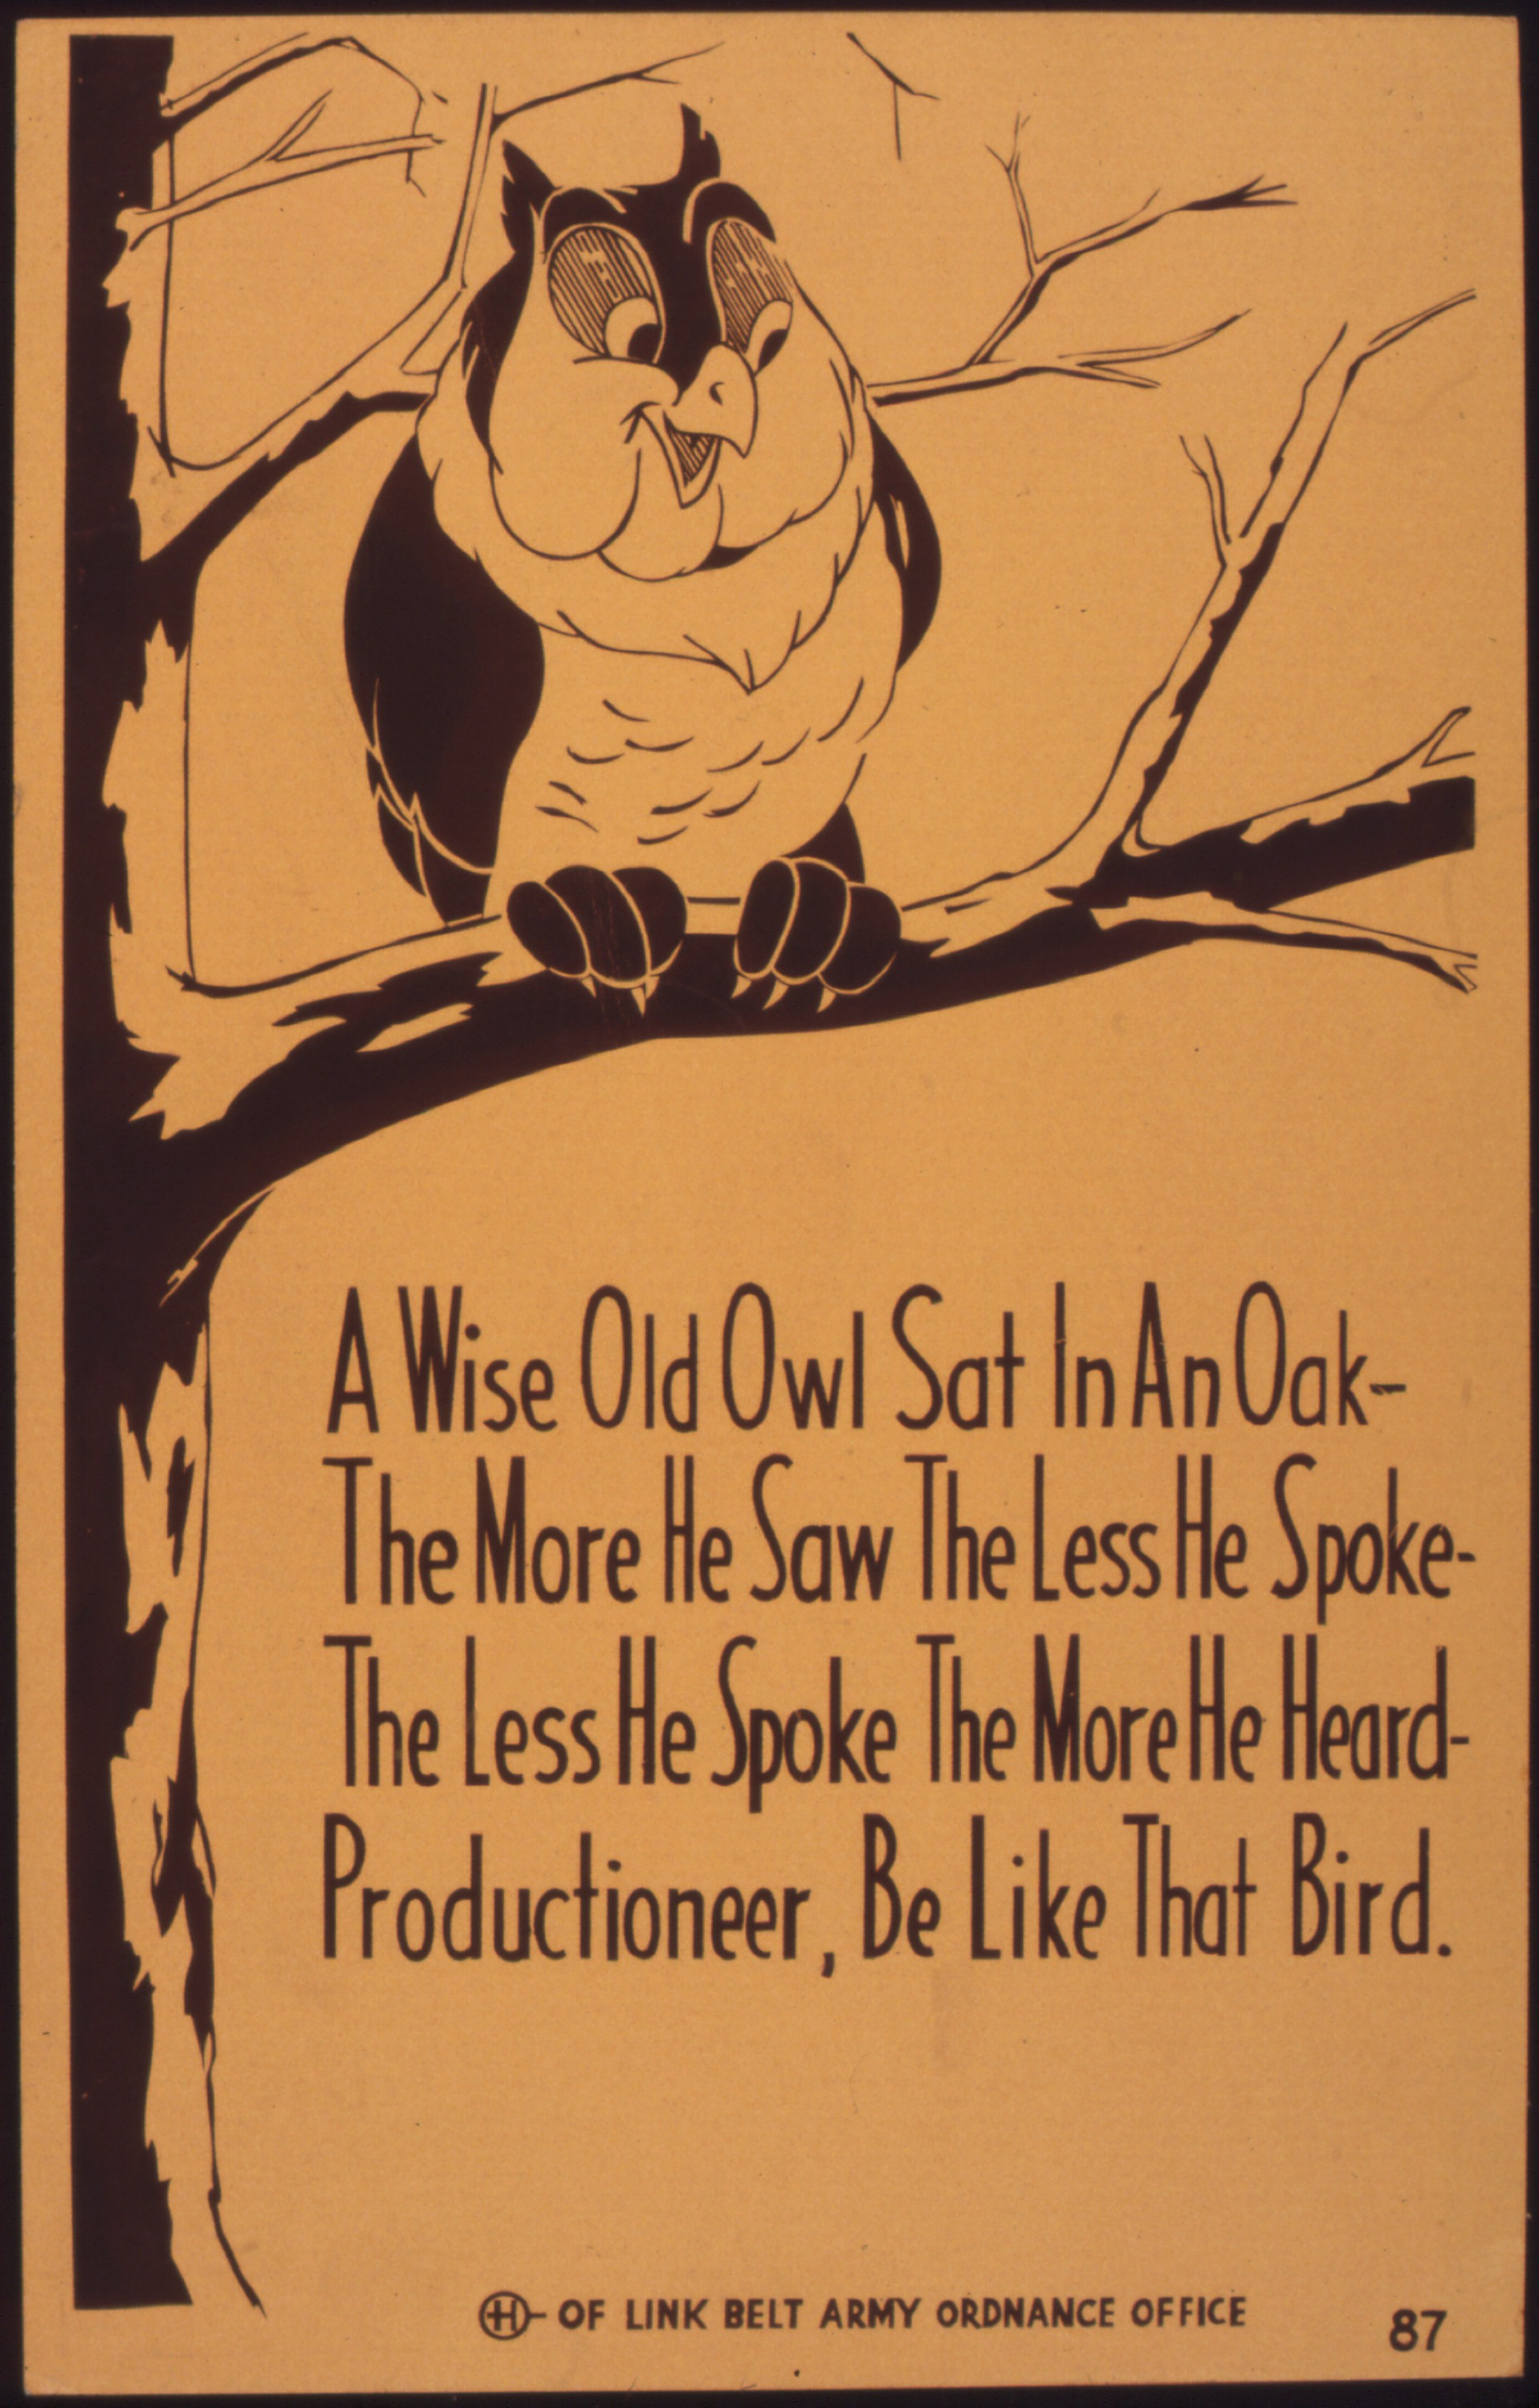 A Wise Old Owl Orange Marmalade Press